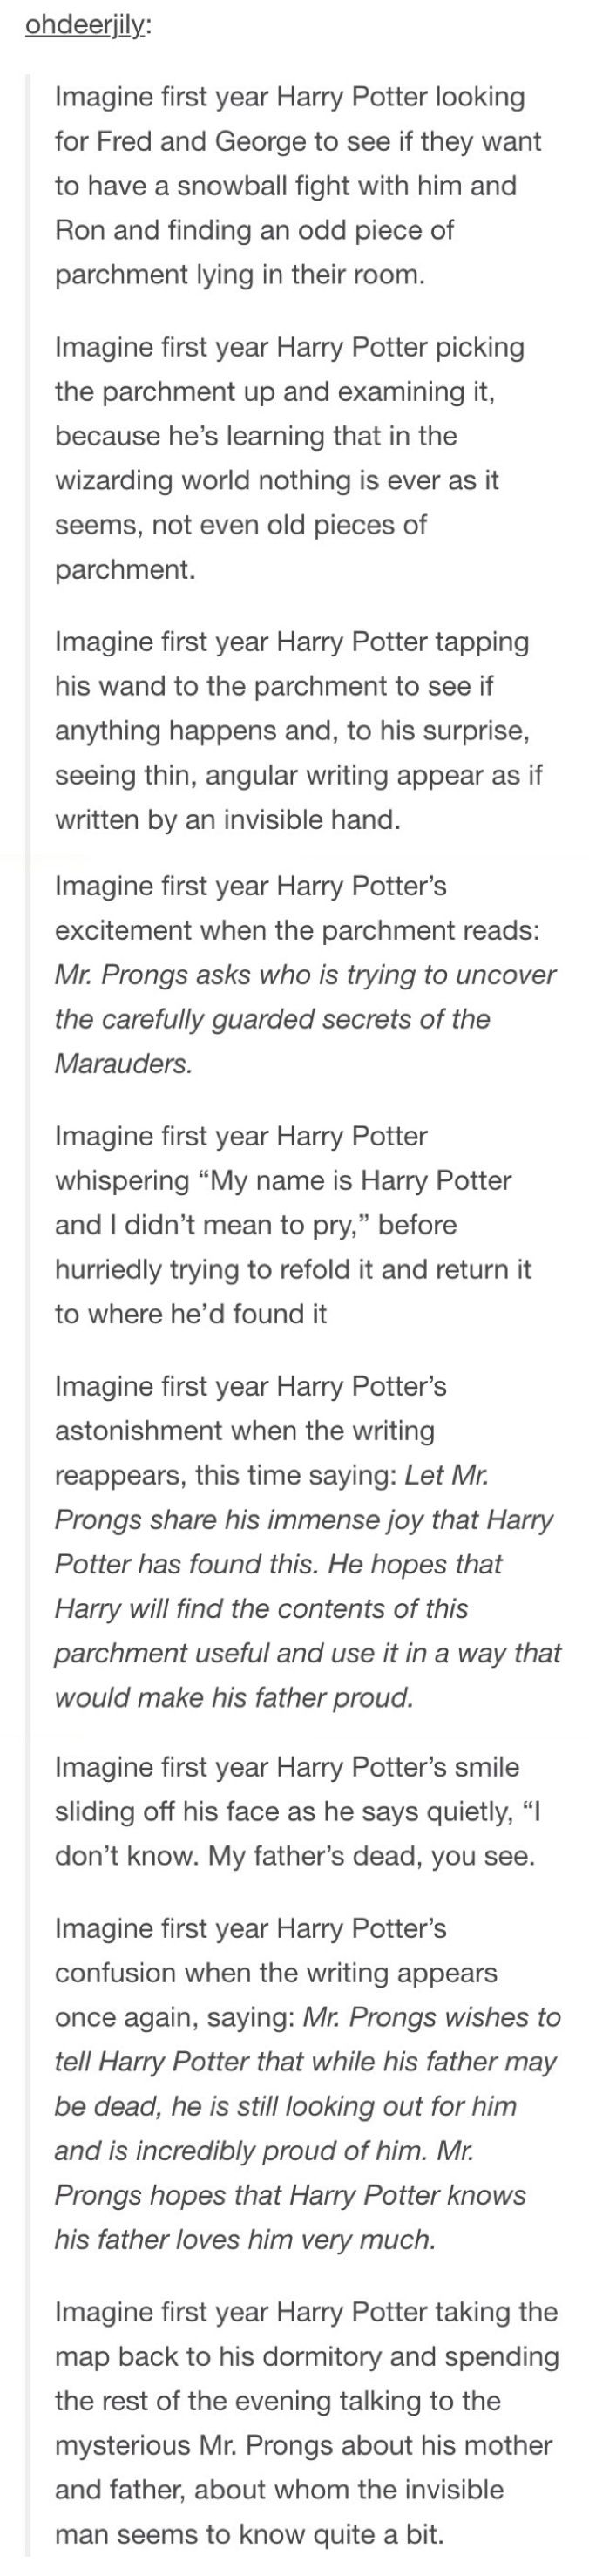 I love this but messer prongs would at most have the knowledge of 17 year old James Potter << I like to think that afterlife!James was so invested in Harry that he would hijack the map's insult system and reach out to Harry through it